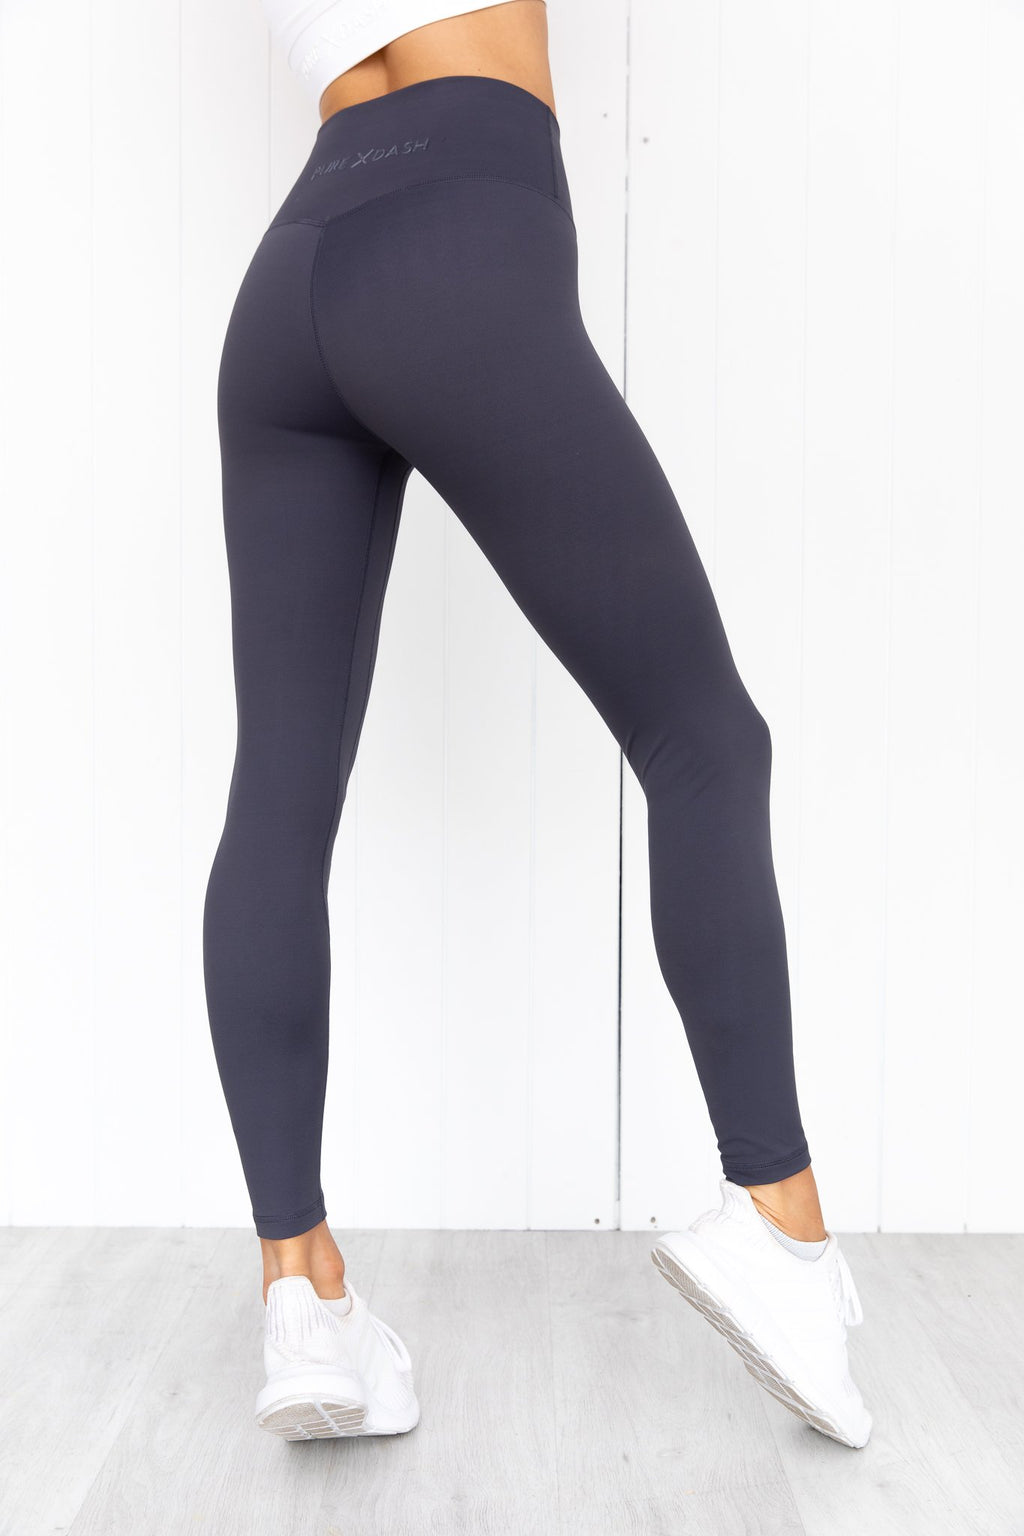 Panther High Rise Leggings - Slate Grey